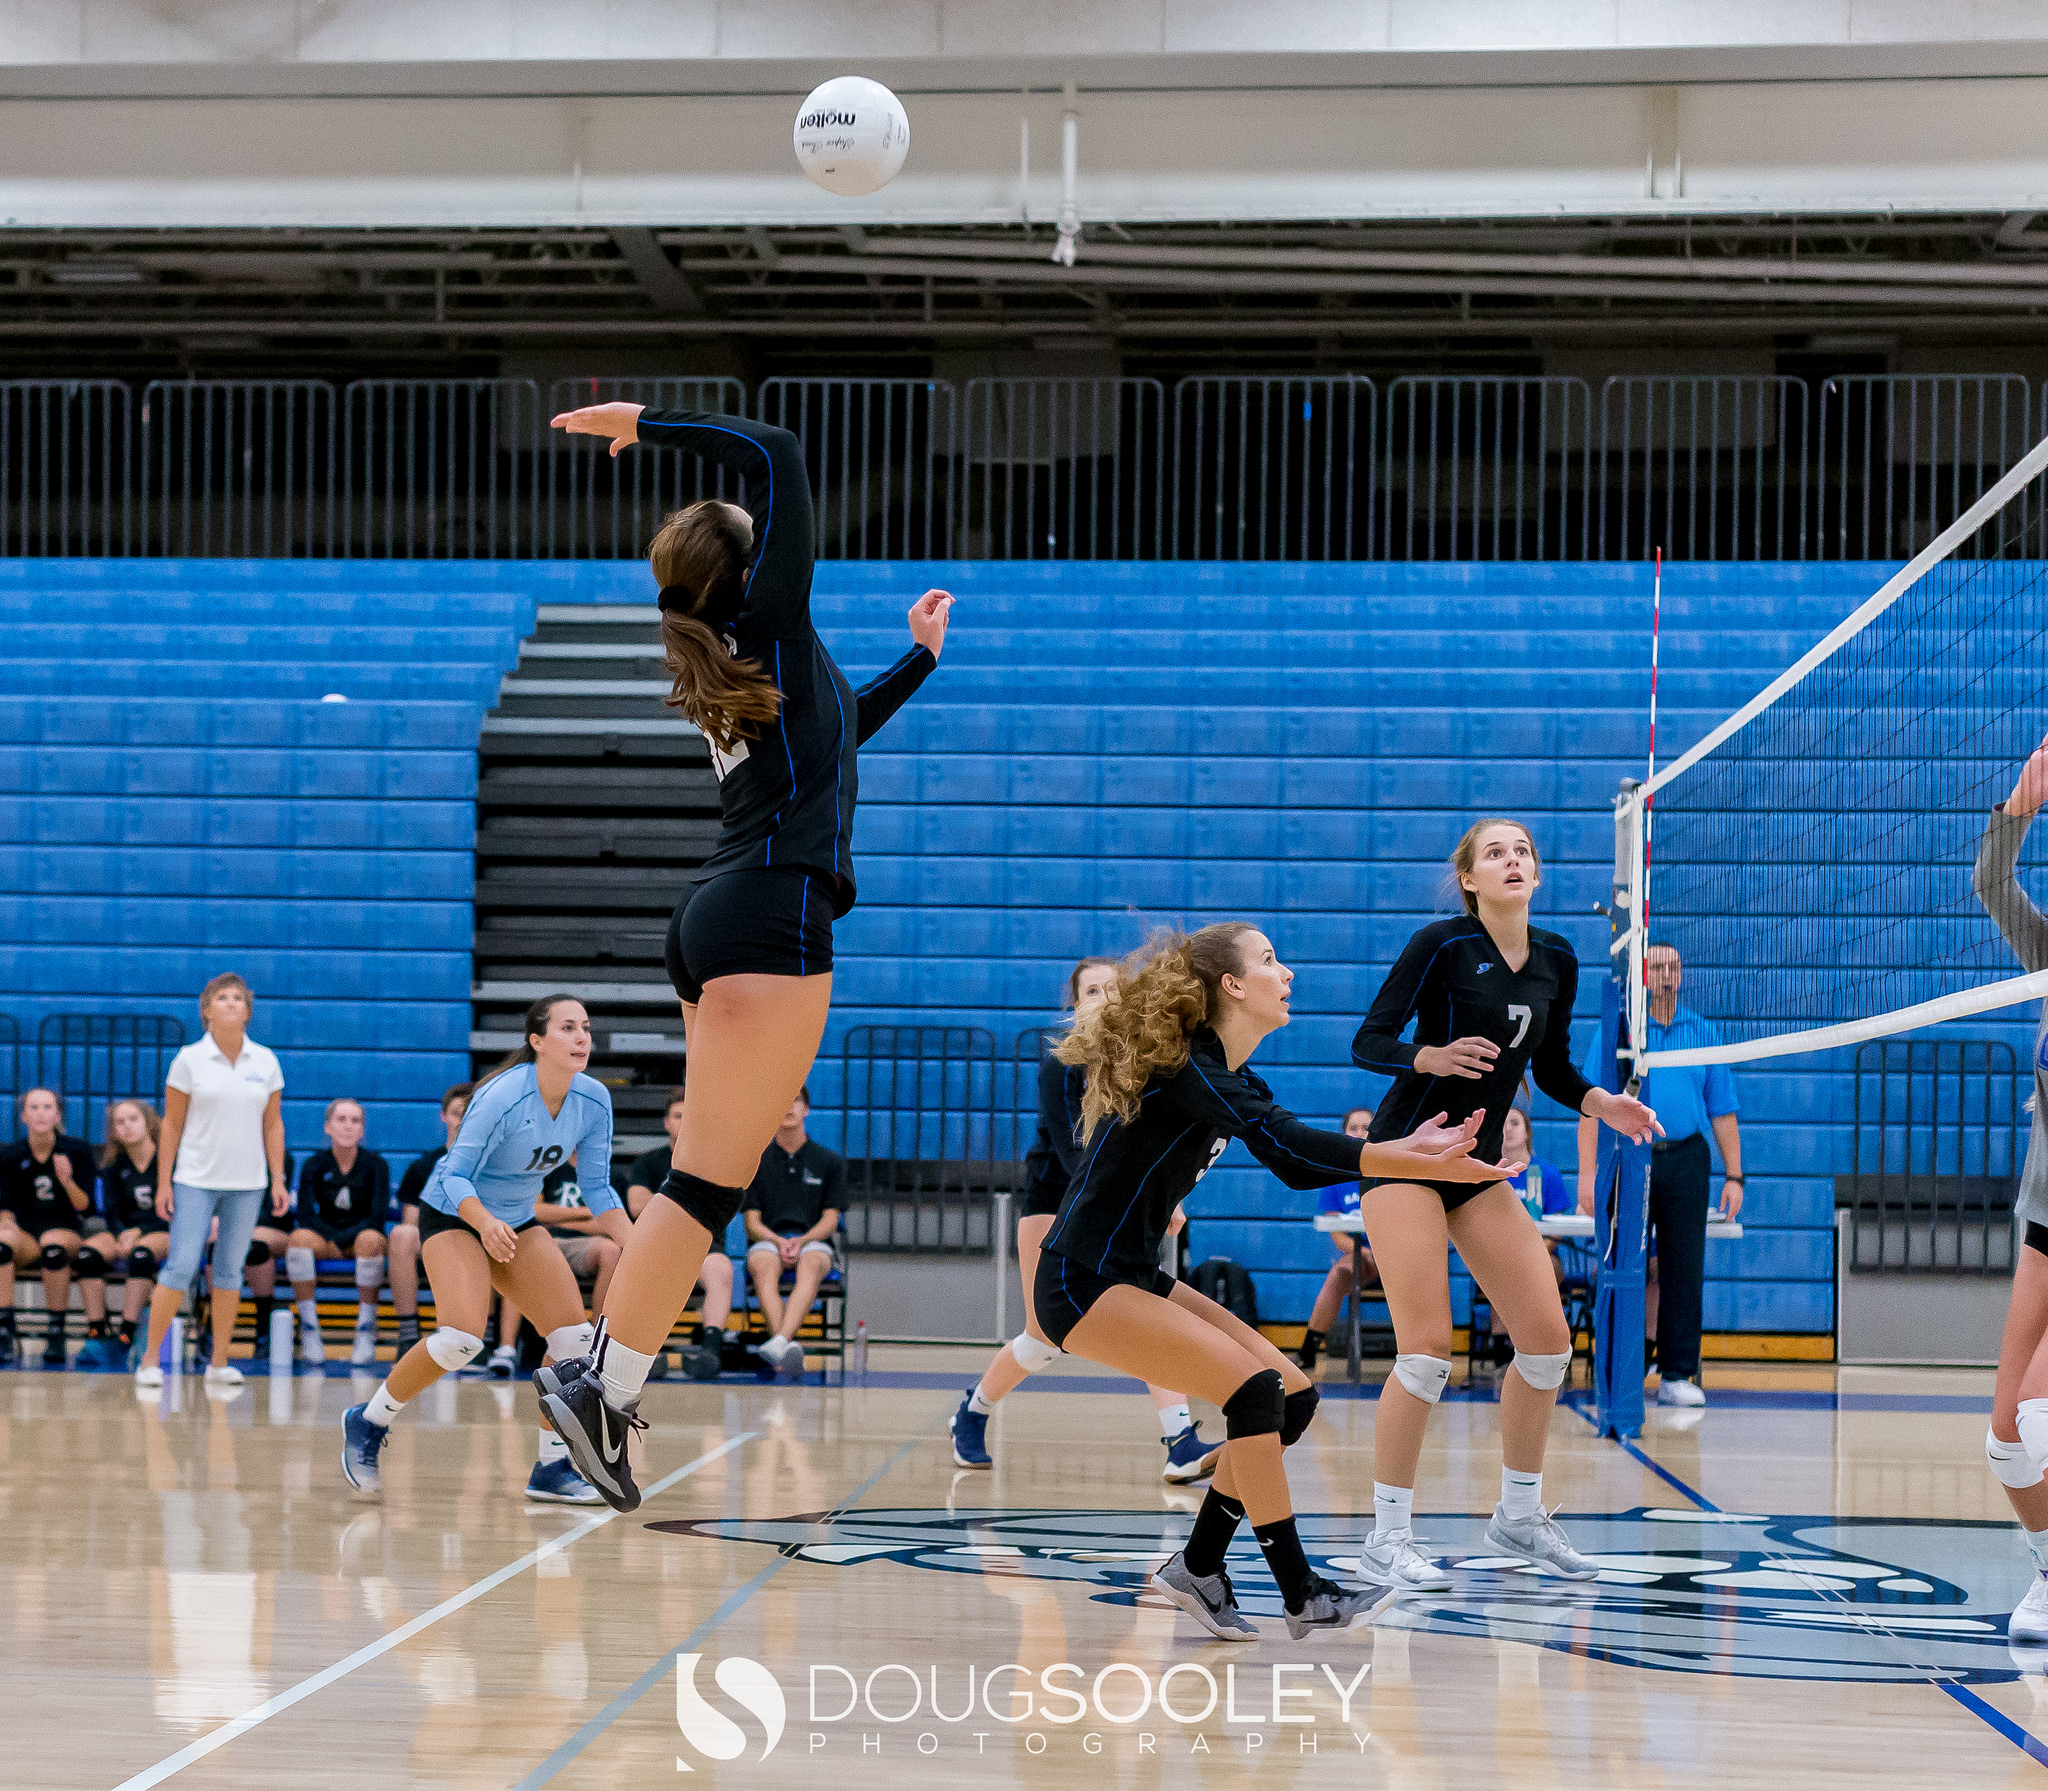 Girls Volleyball at Ramona High continues to DOMINATE !